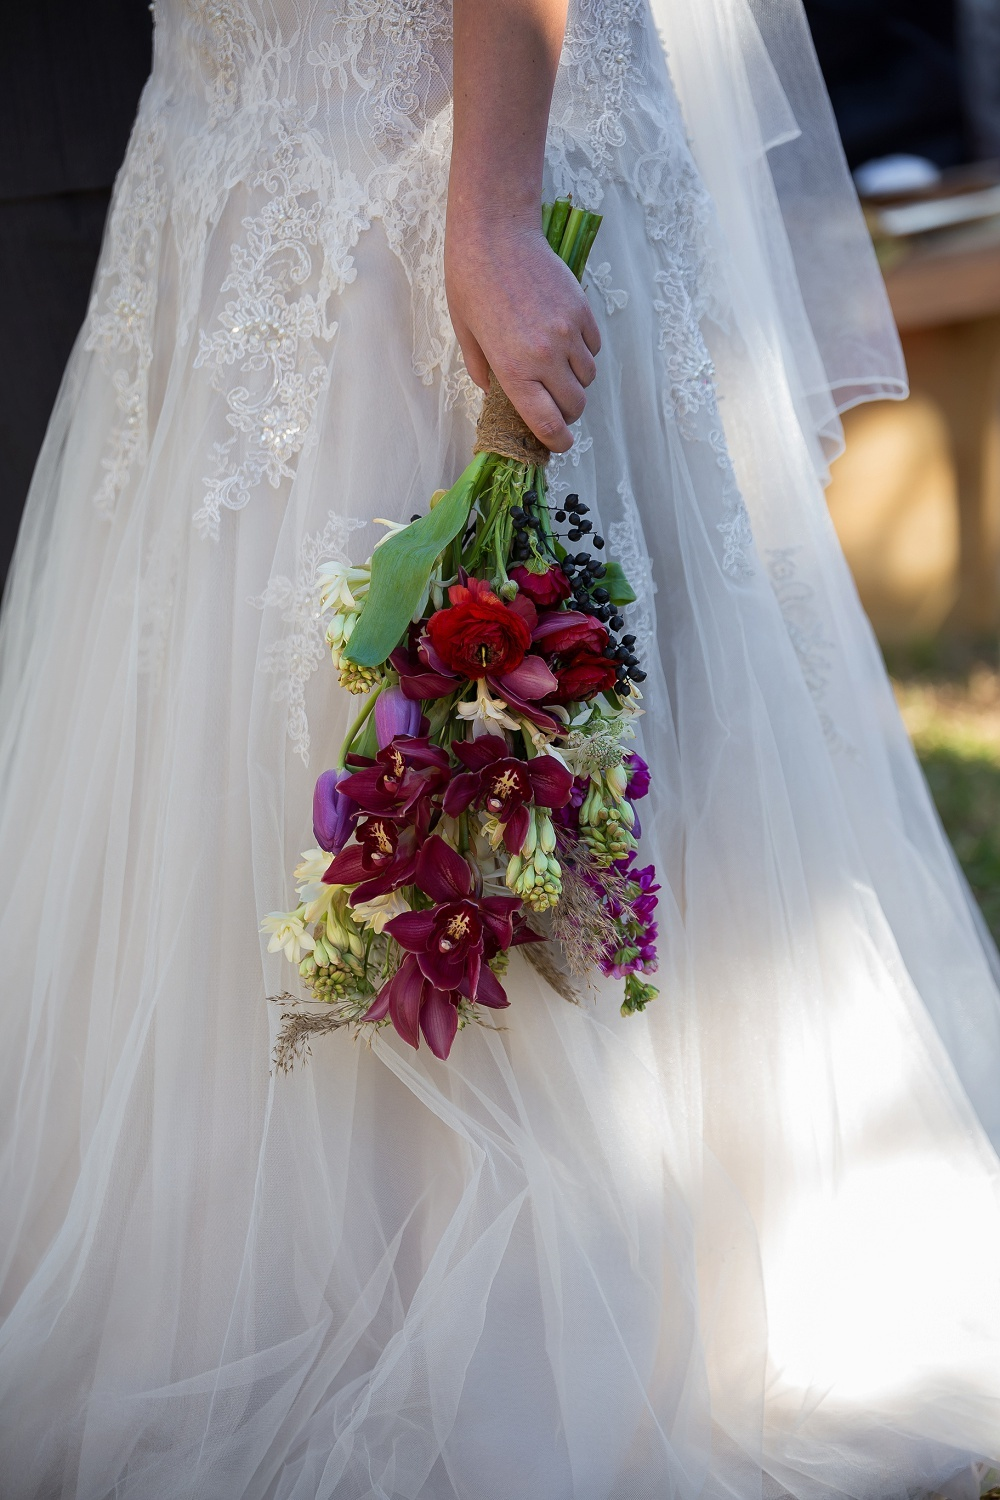 Jewel Tone Wedding Bouquet | Credit: Karina Conradie